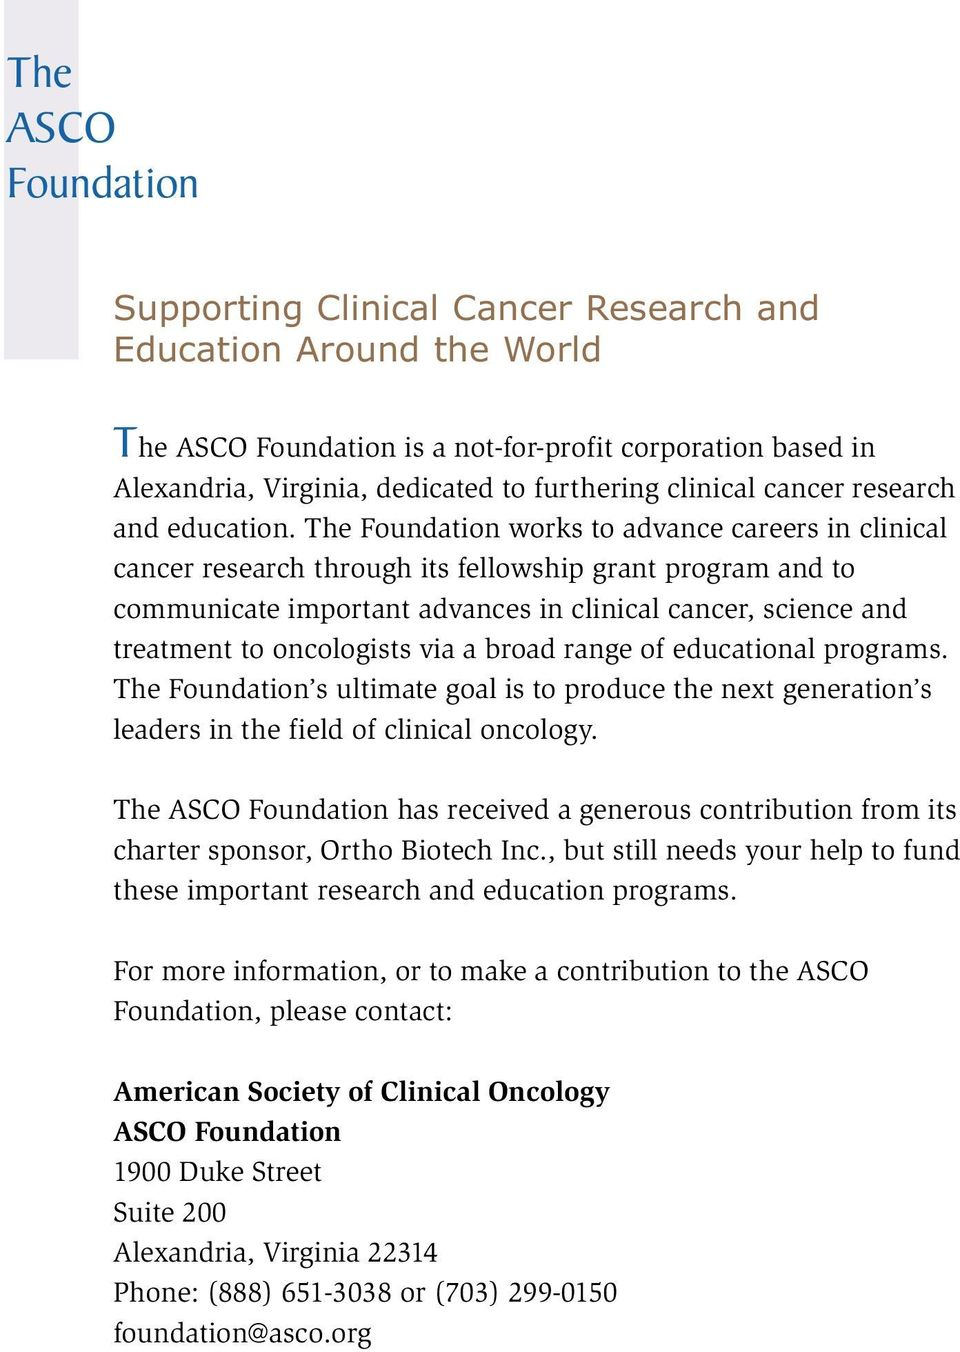 The Foundation works to advance careers in clinical cancer research through its fellowship grant program and to communicate important advances in clinical cancer, science and treatment to oncologists